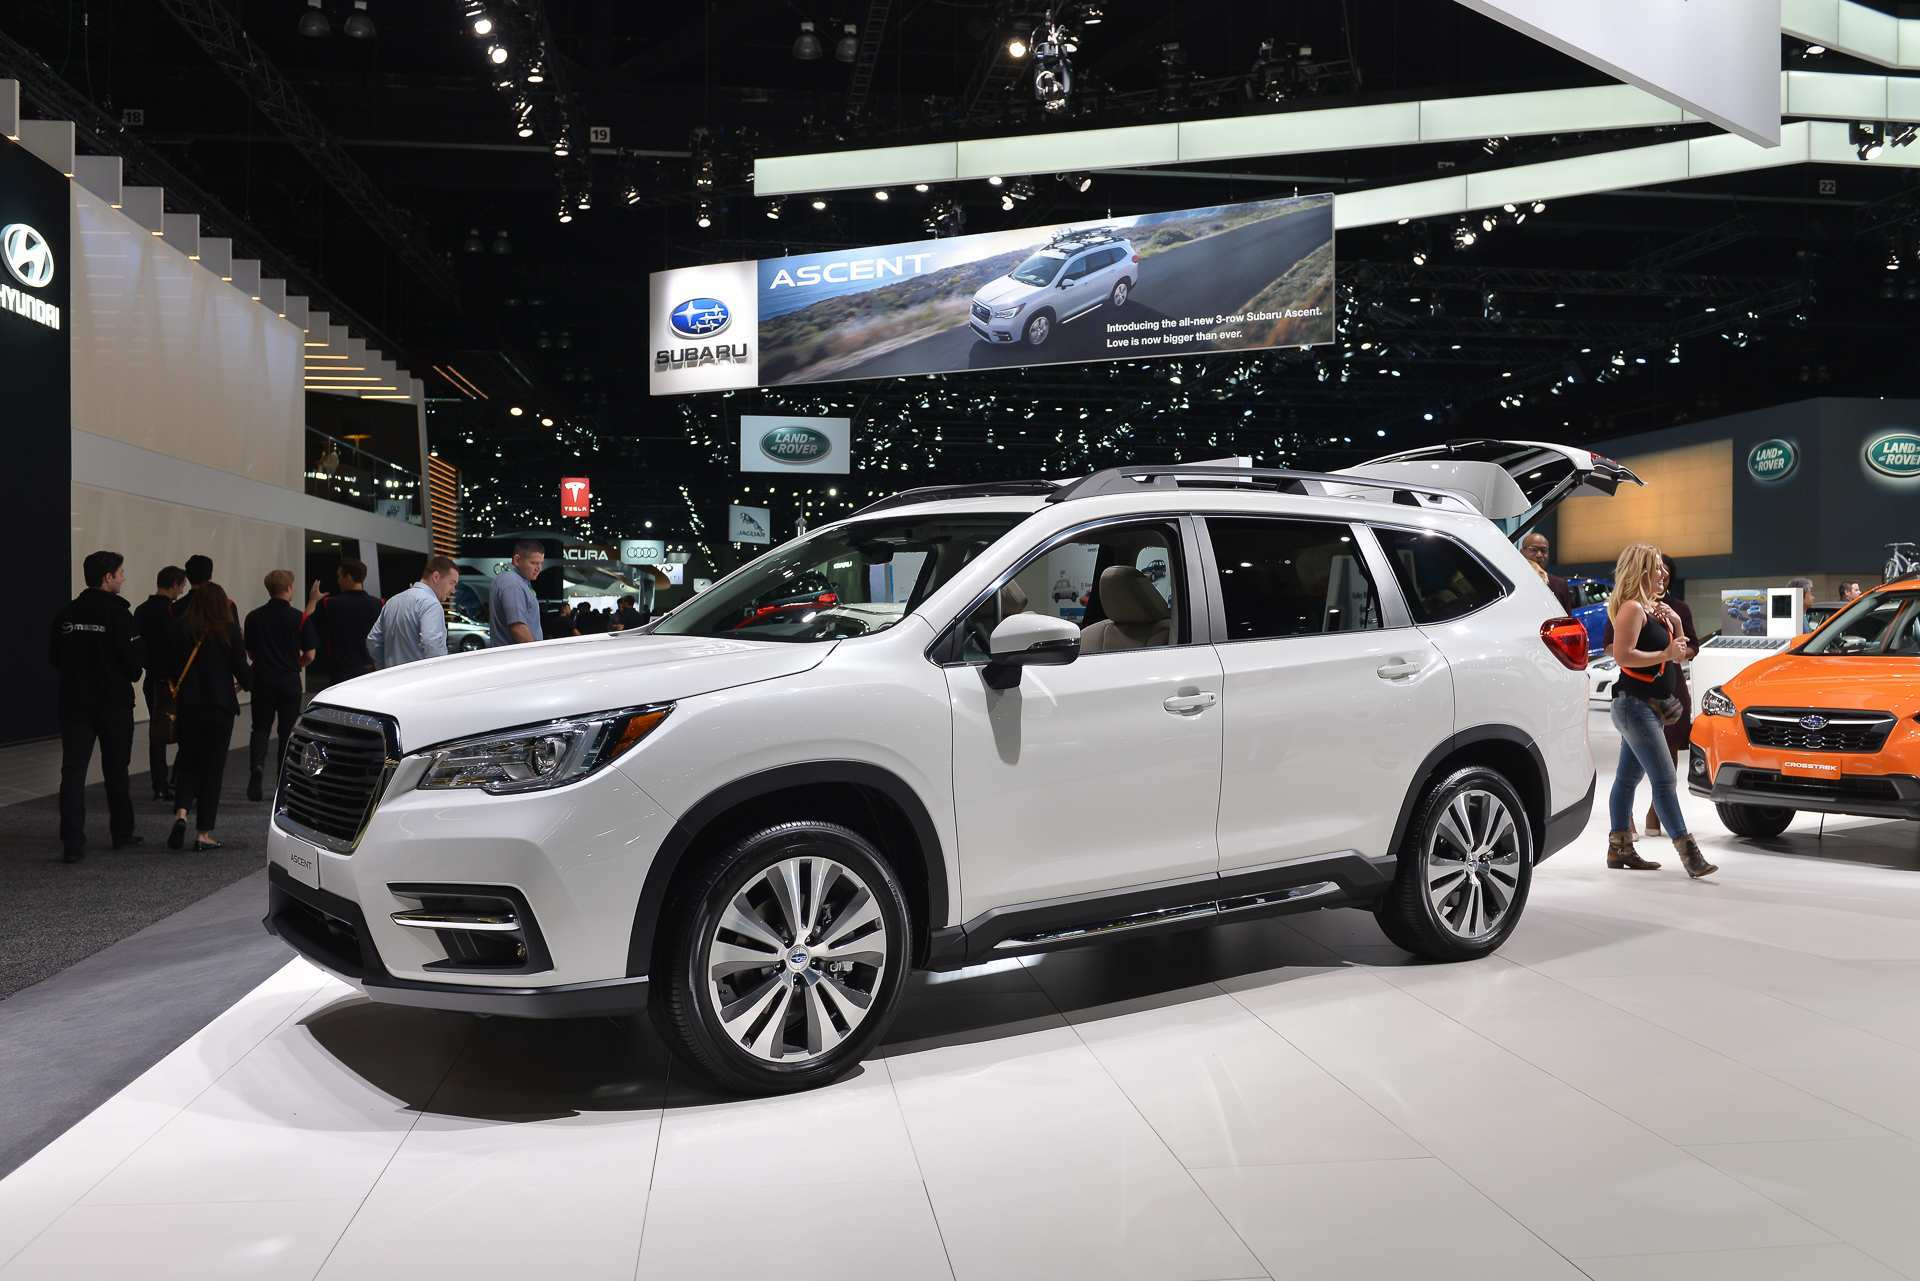 18 Concept of 2019 Subaru Ascent Video Ratings with 2019 Subaru Ascent Video